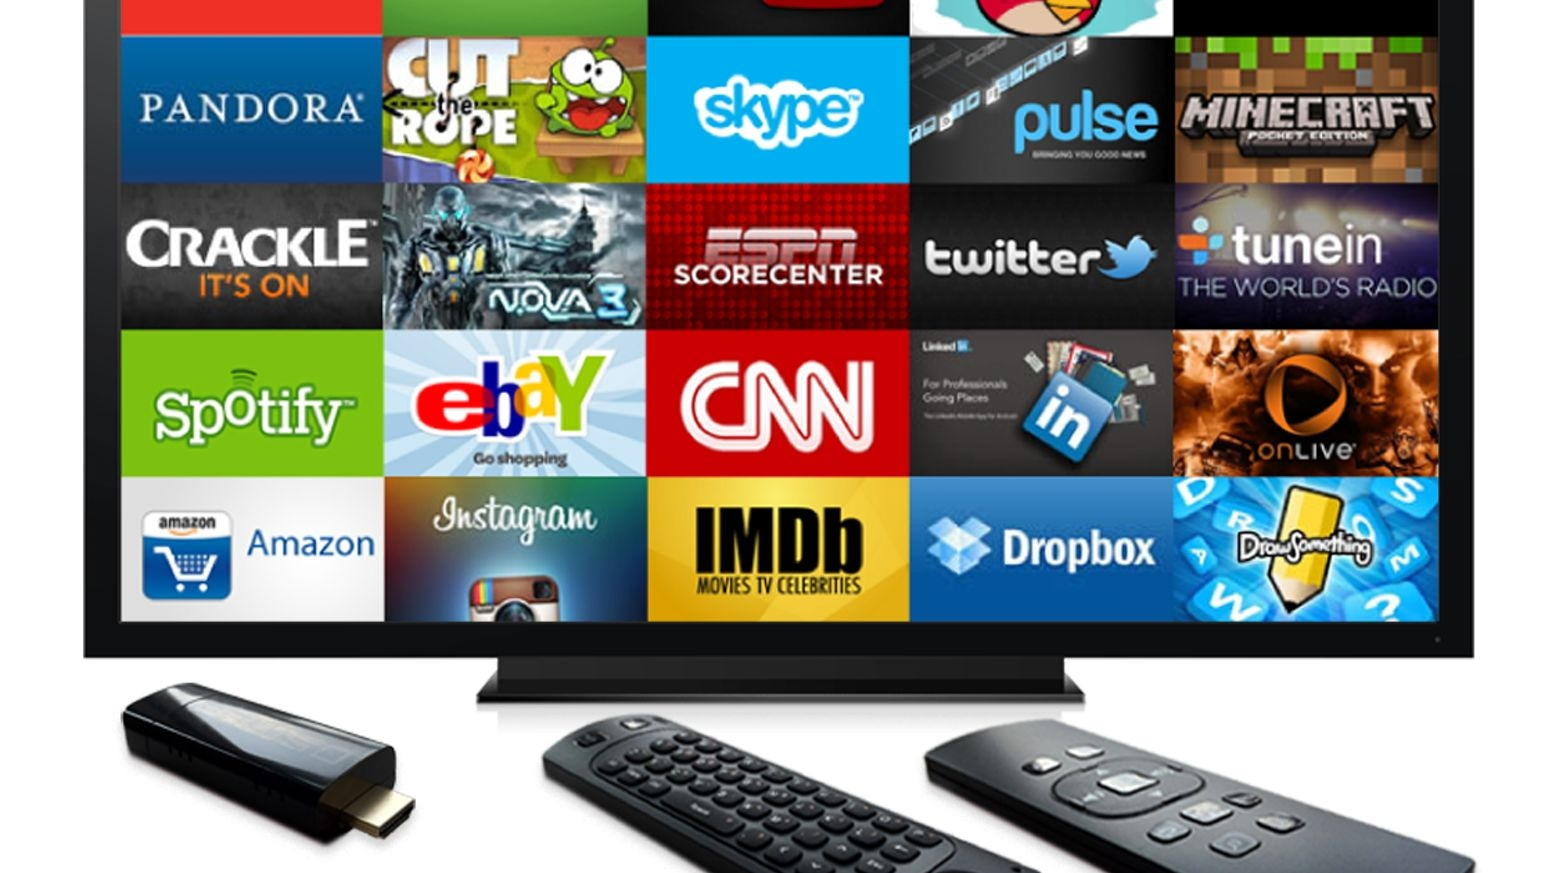 Turn any TV into a Smart TV. Android 4.0. Control it with the wave of a hand, using our revolutionary gesture remote.